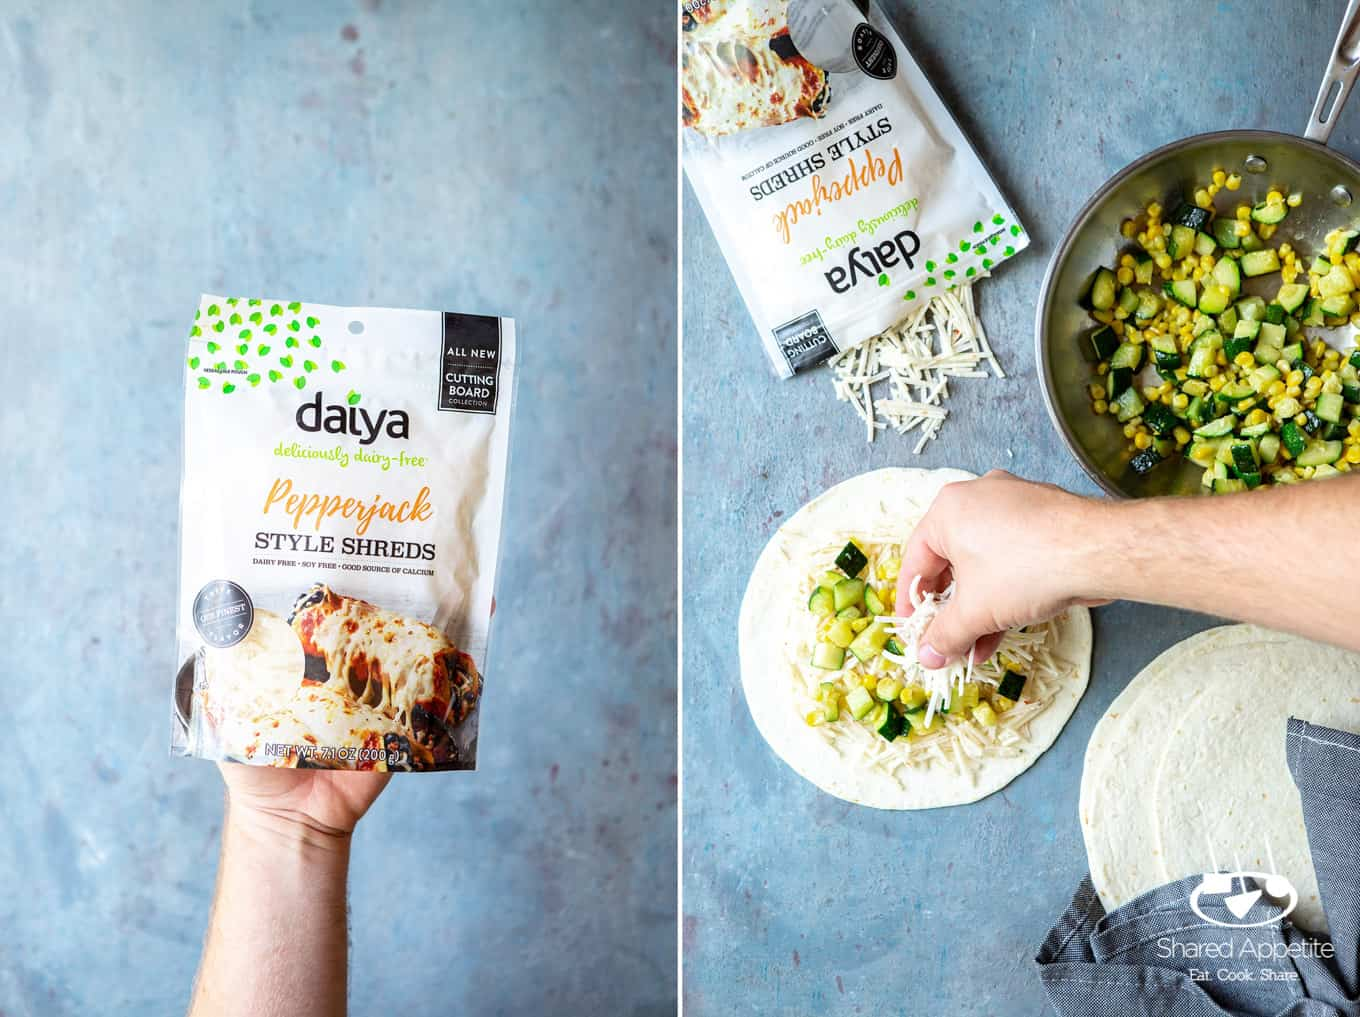 Sprinkling Daiya Vegan Pepperjack Cheese on Produce for Vegan Zucchini and Corn Quesadillas | sharedappetite.com